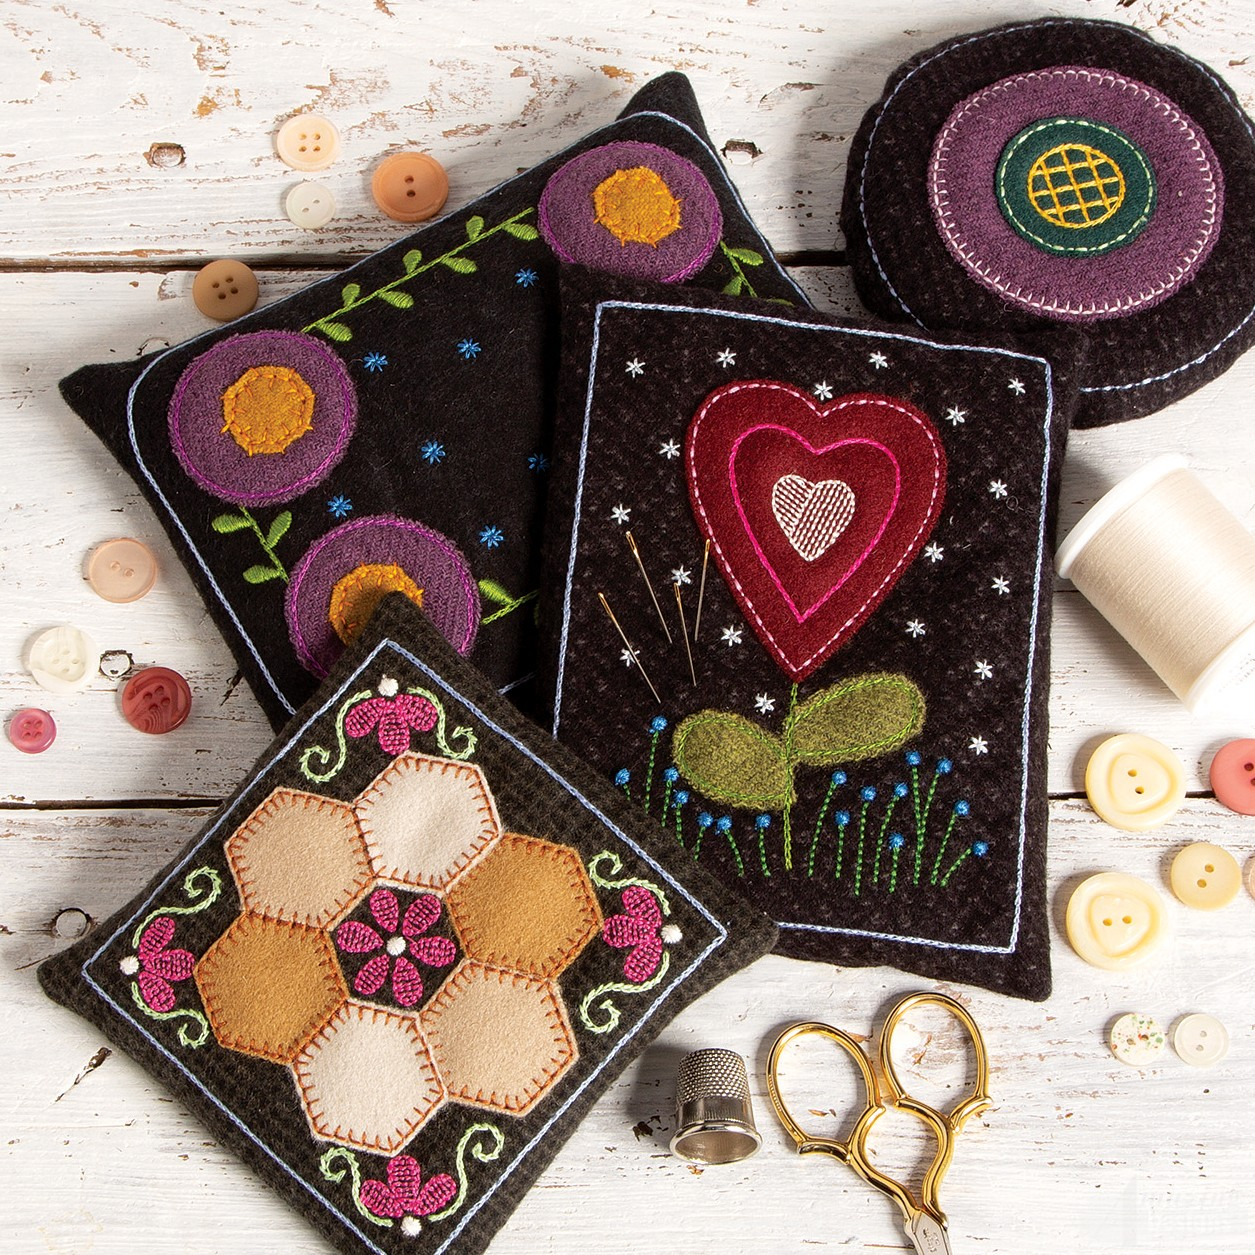 Diy Wooly Pincushions Amazing Designs Collection